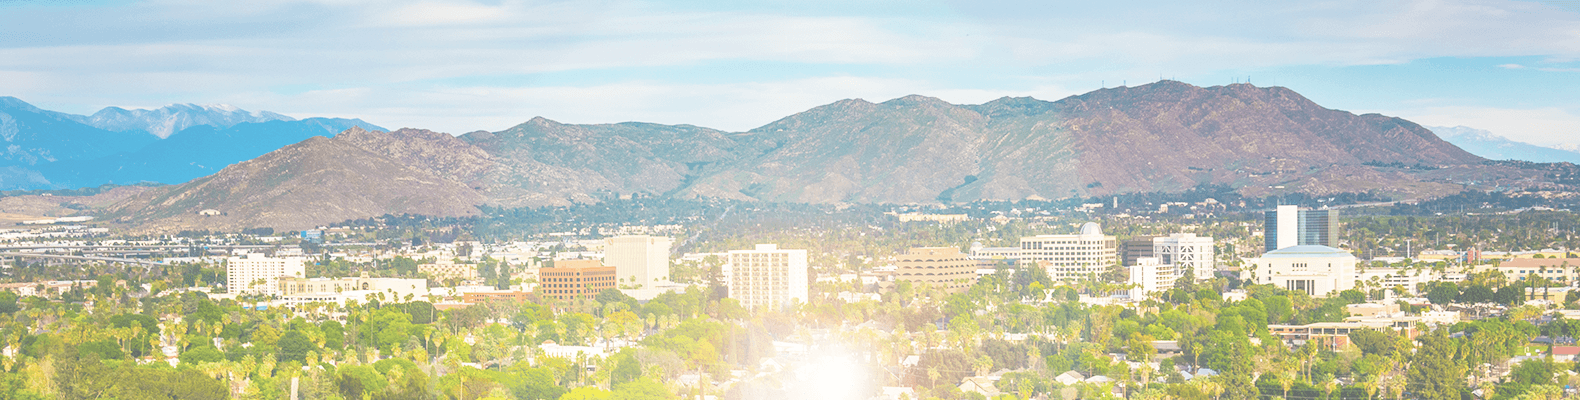 Riverside California skyline